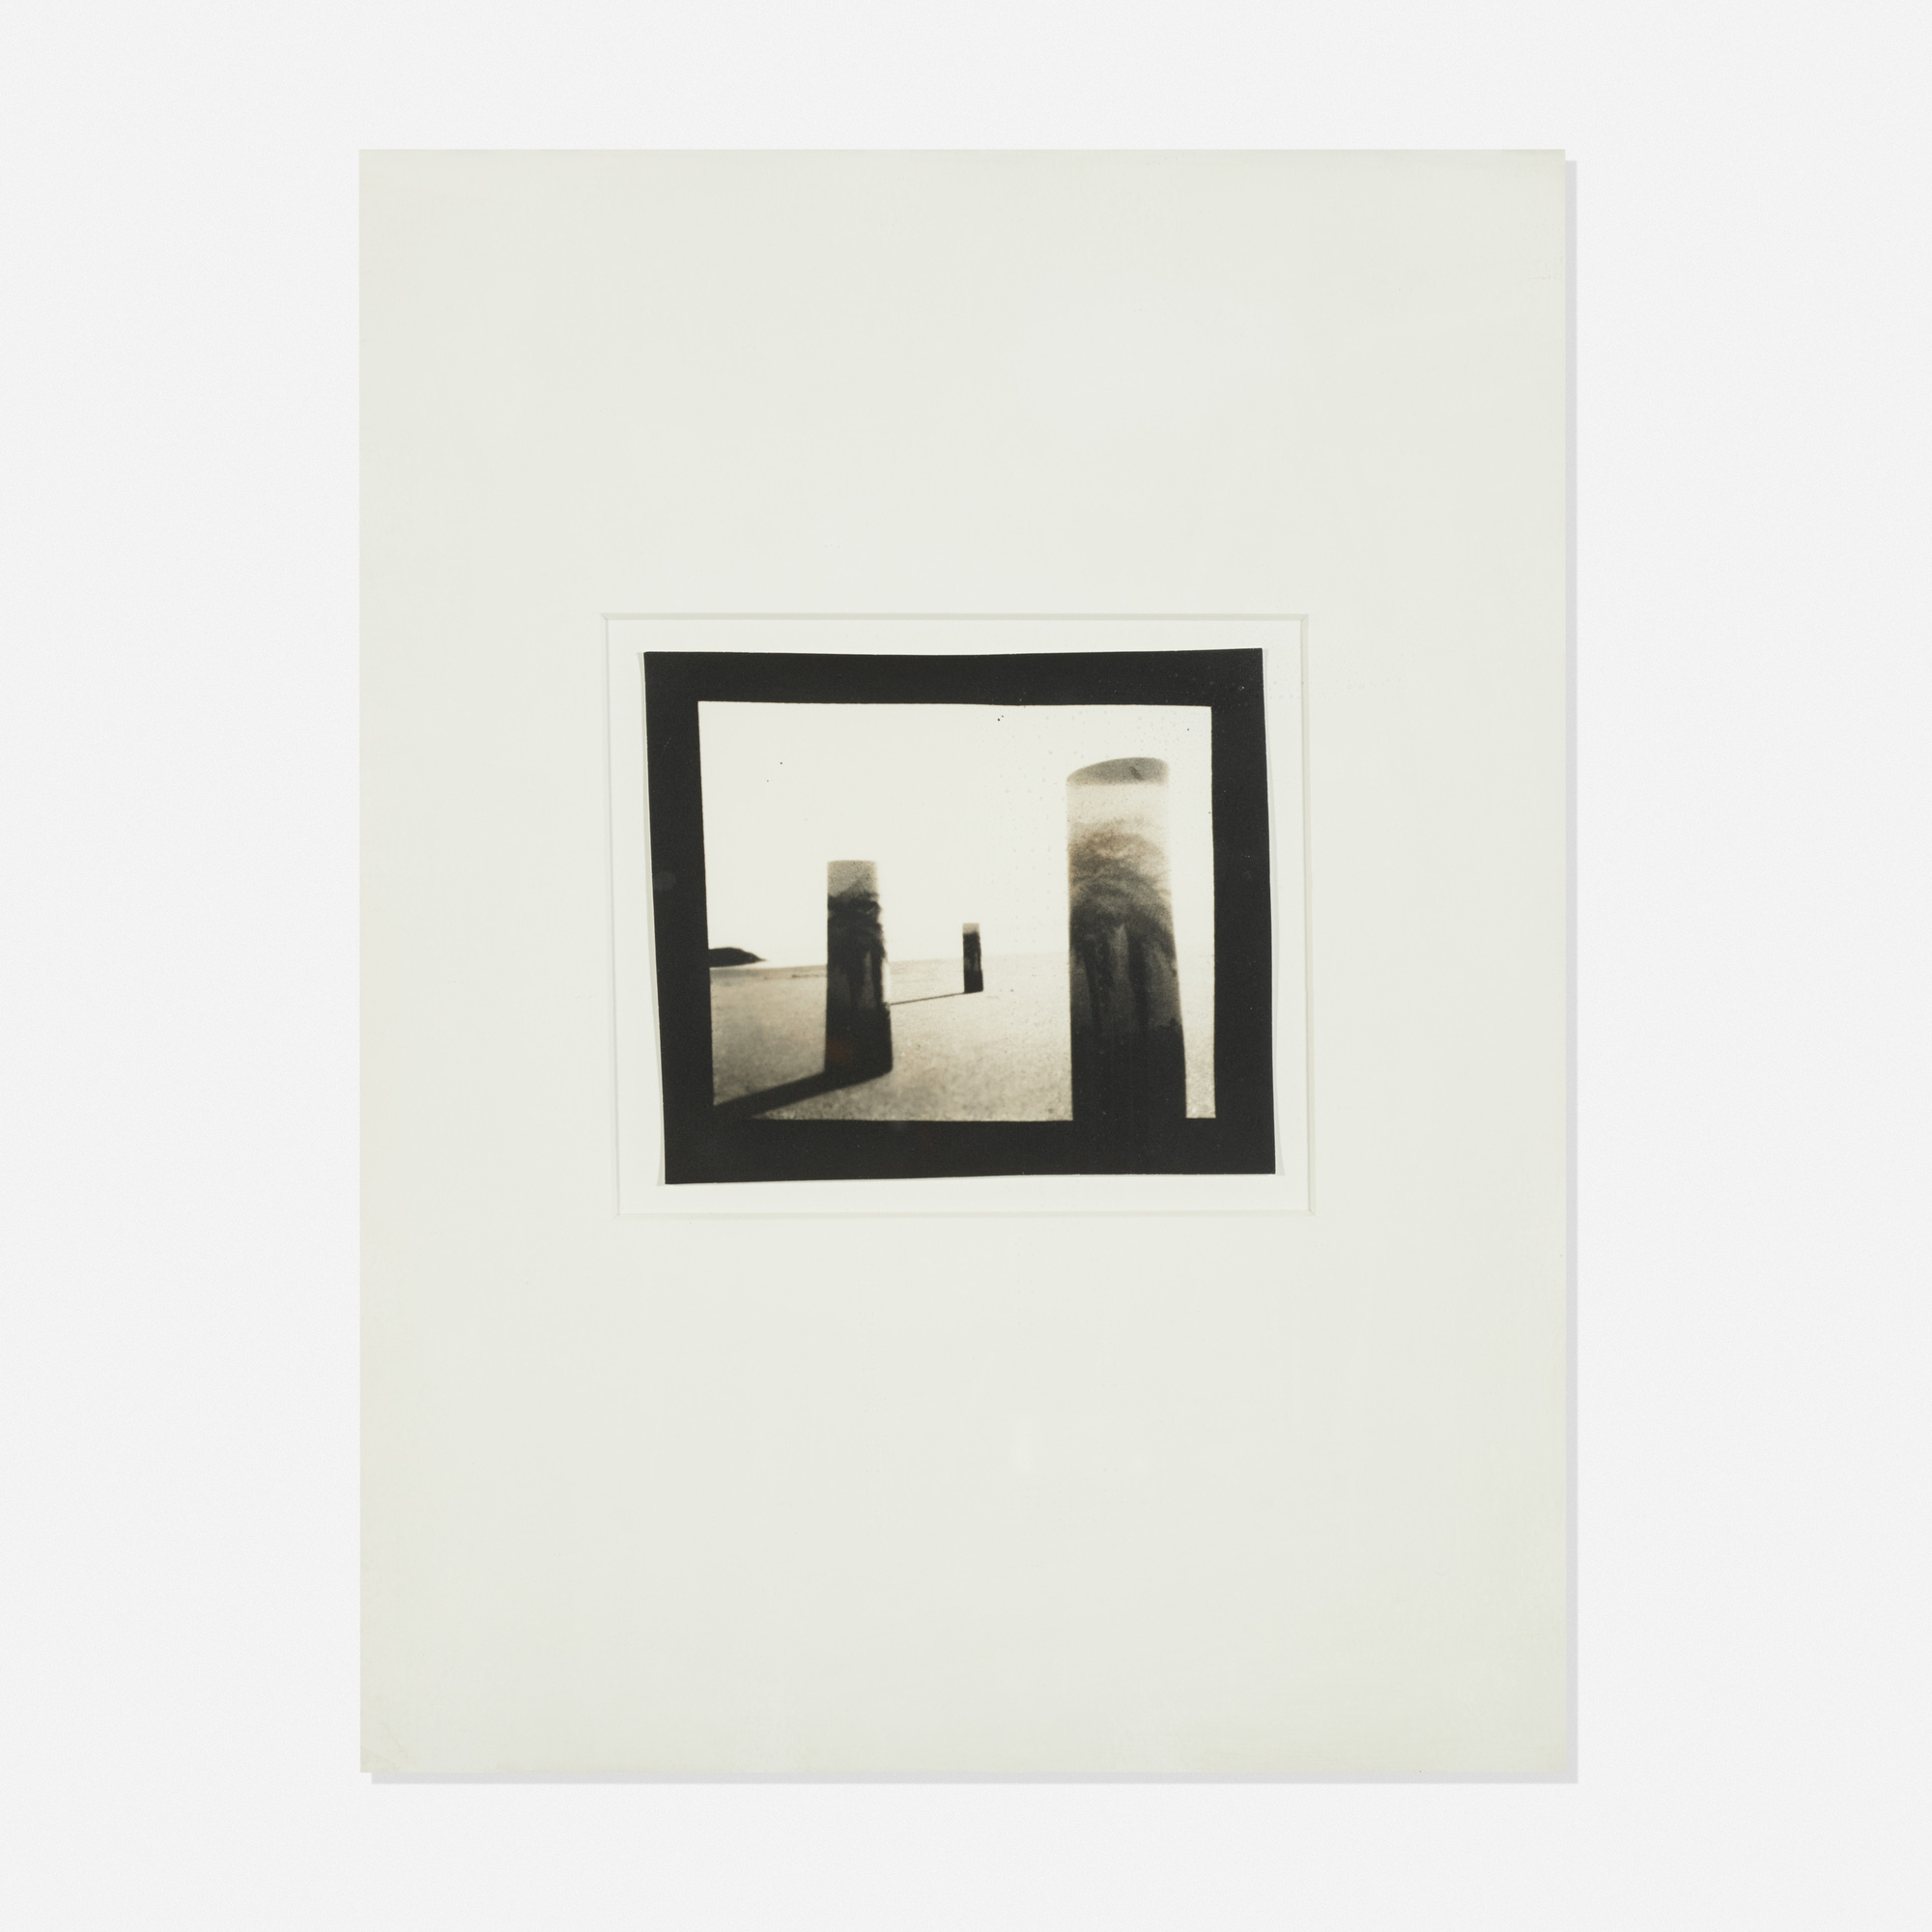 753: Ruth Thorne-Thomsen / Columns (from the Expeditions series) (1 of 1)